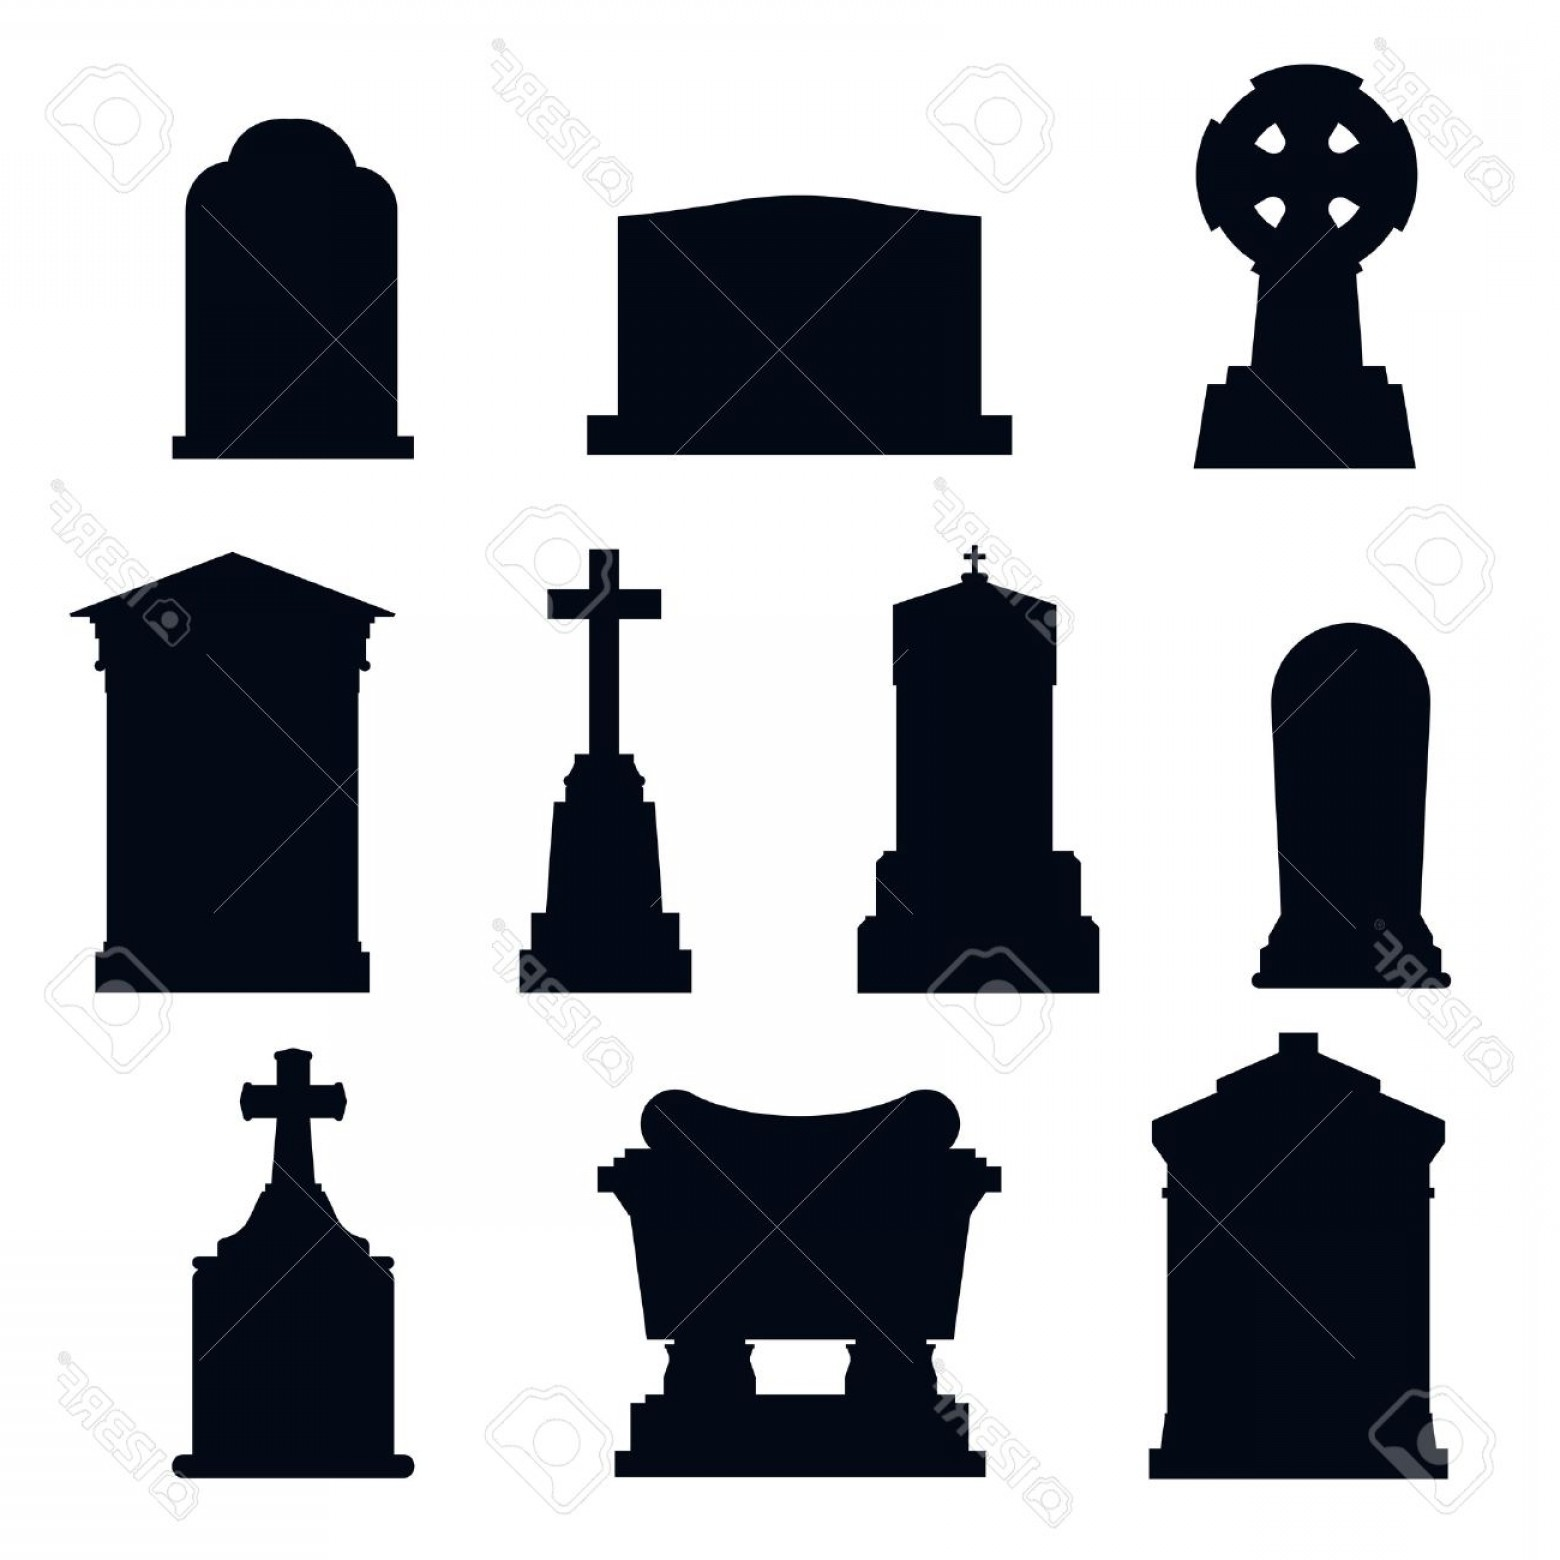 Gravestone Black And Whit Vector JPEG: Photostock Vector Tombs Stone Grave Vector Construction Black And White Icons Vector Tombs Icons Isolated Tombs Stone